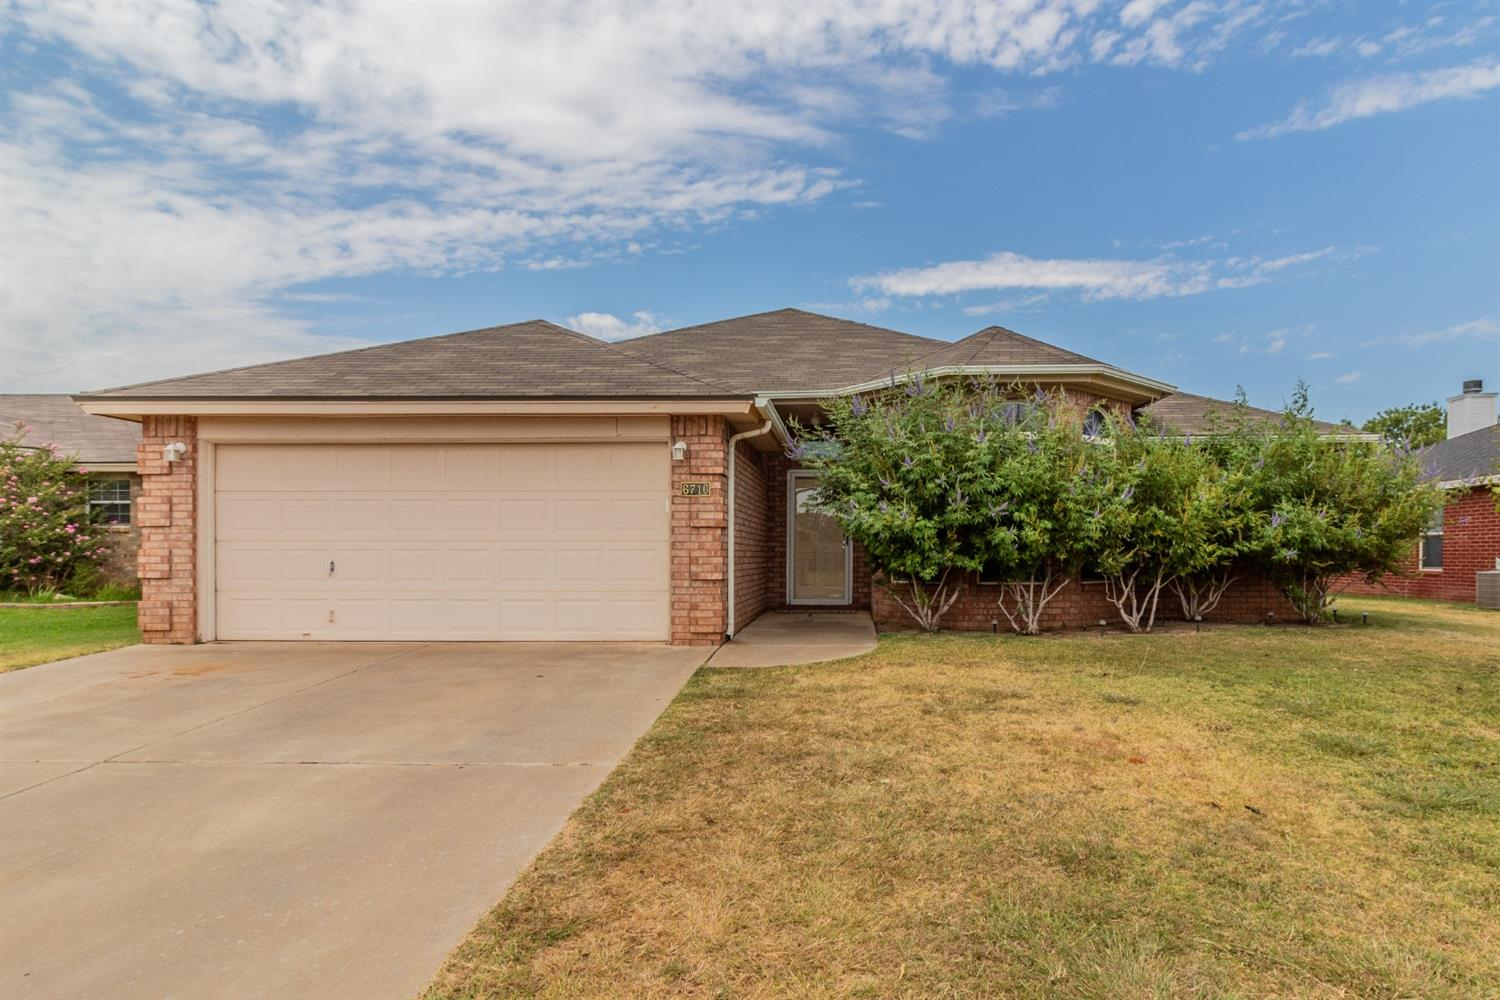 6710 7th Street, Lubbock in Lubbock County, TX 79416 Home for Sale